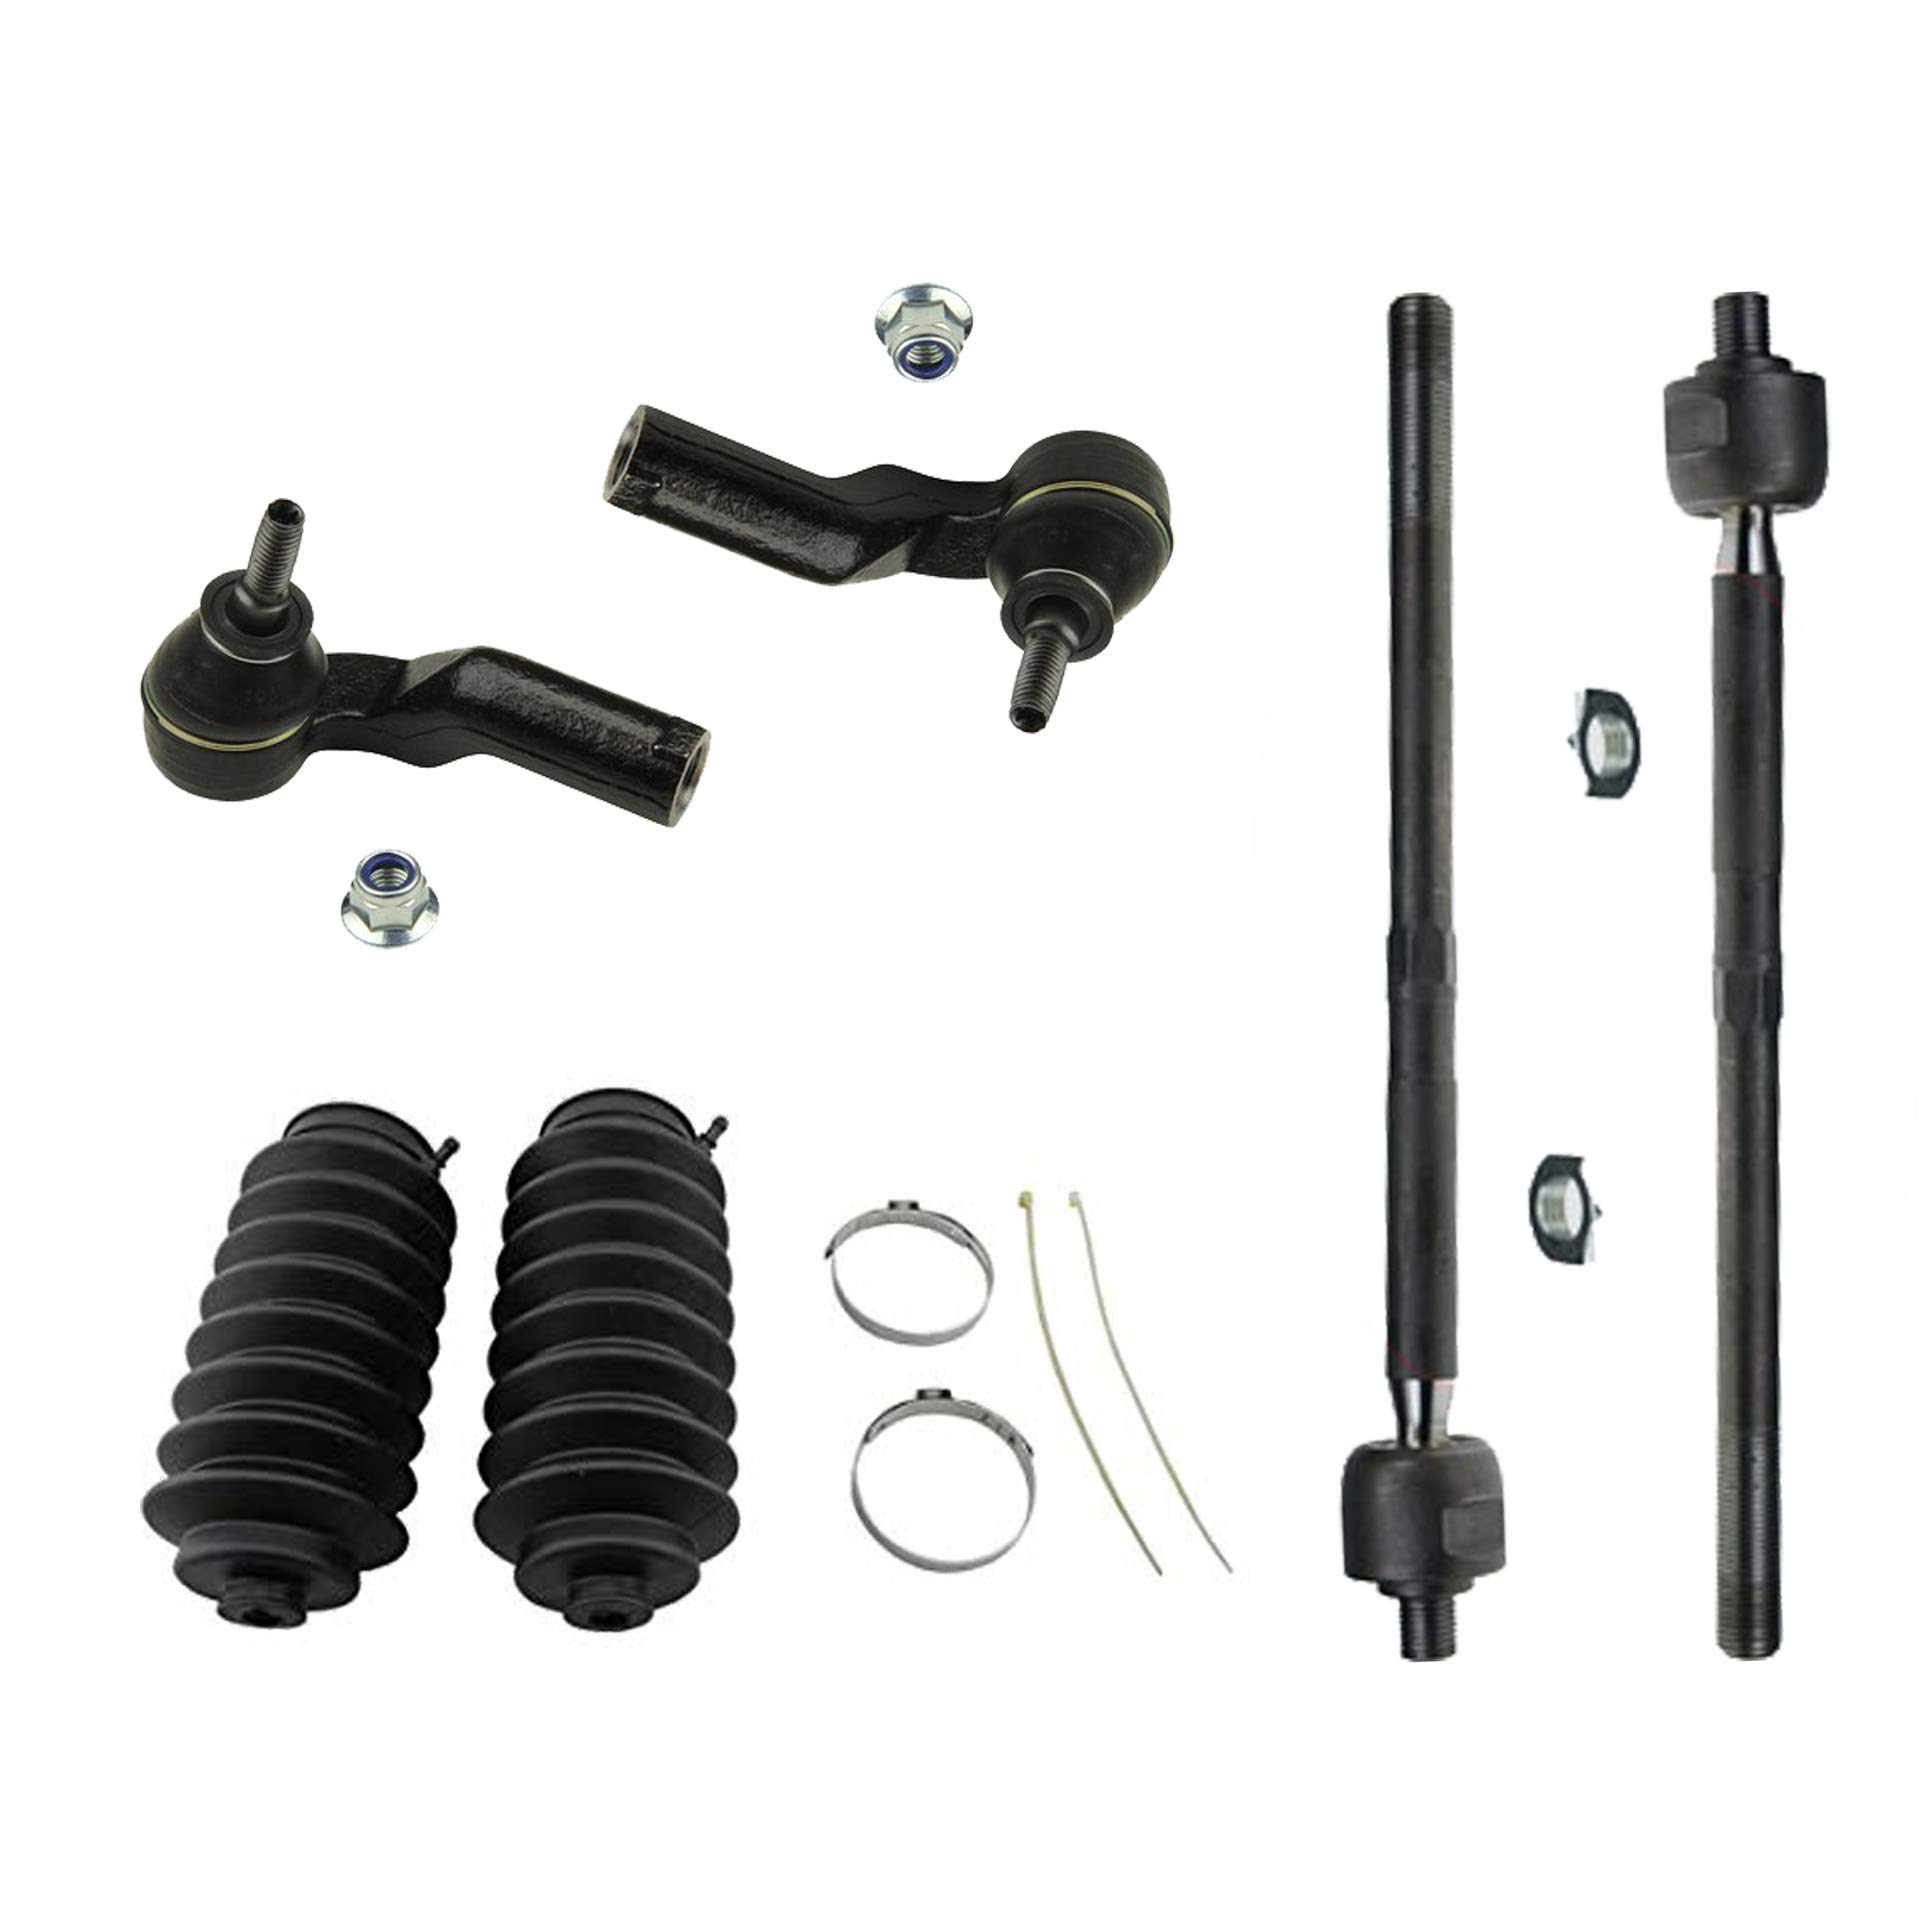 All 4 Front Inner and Outer Tie Rod End Links, New 6-Piece Front Suspension Kit 2 Detroit Axle Tie Rod Rack Boots